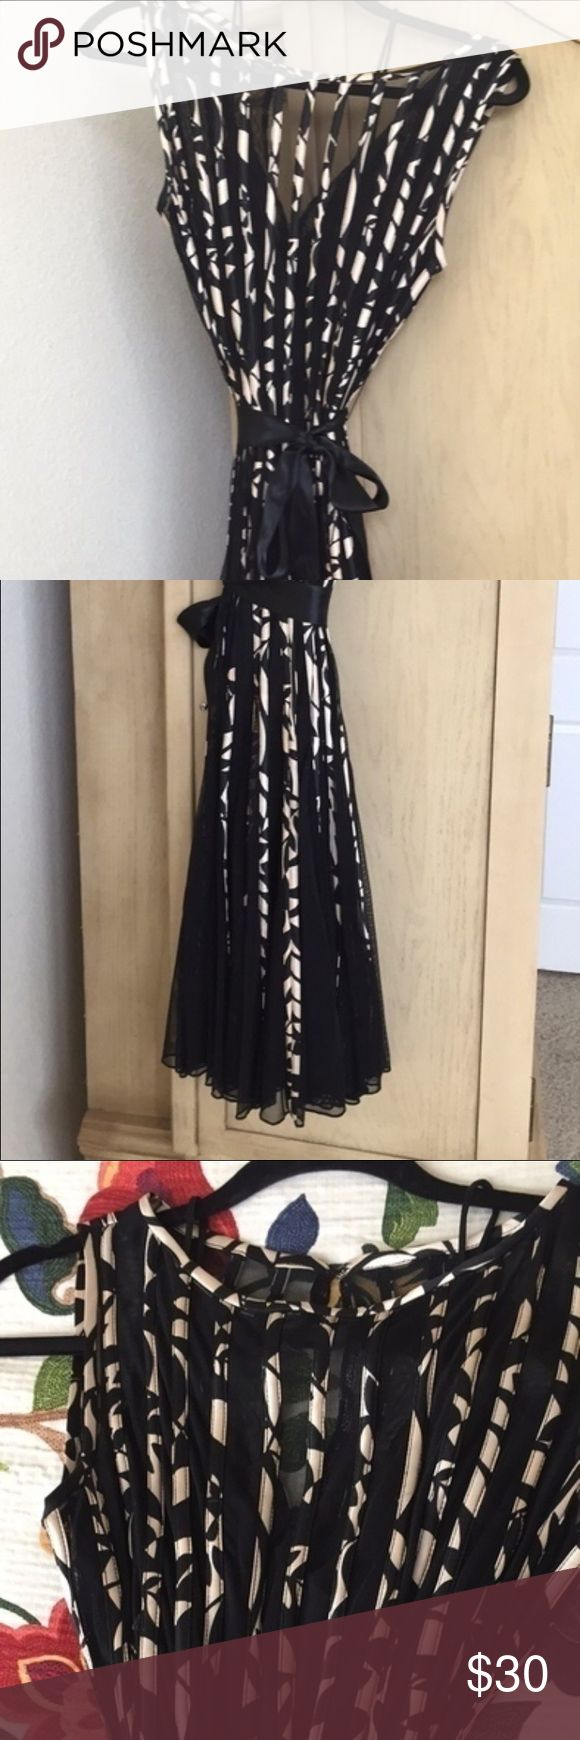 Xscape Petite Dress Size 8 Very Pretty dress. Sheer overlay and black body slip dress underneath. Perfect for a special occasion! Dresses